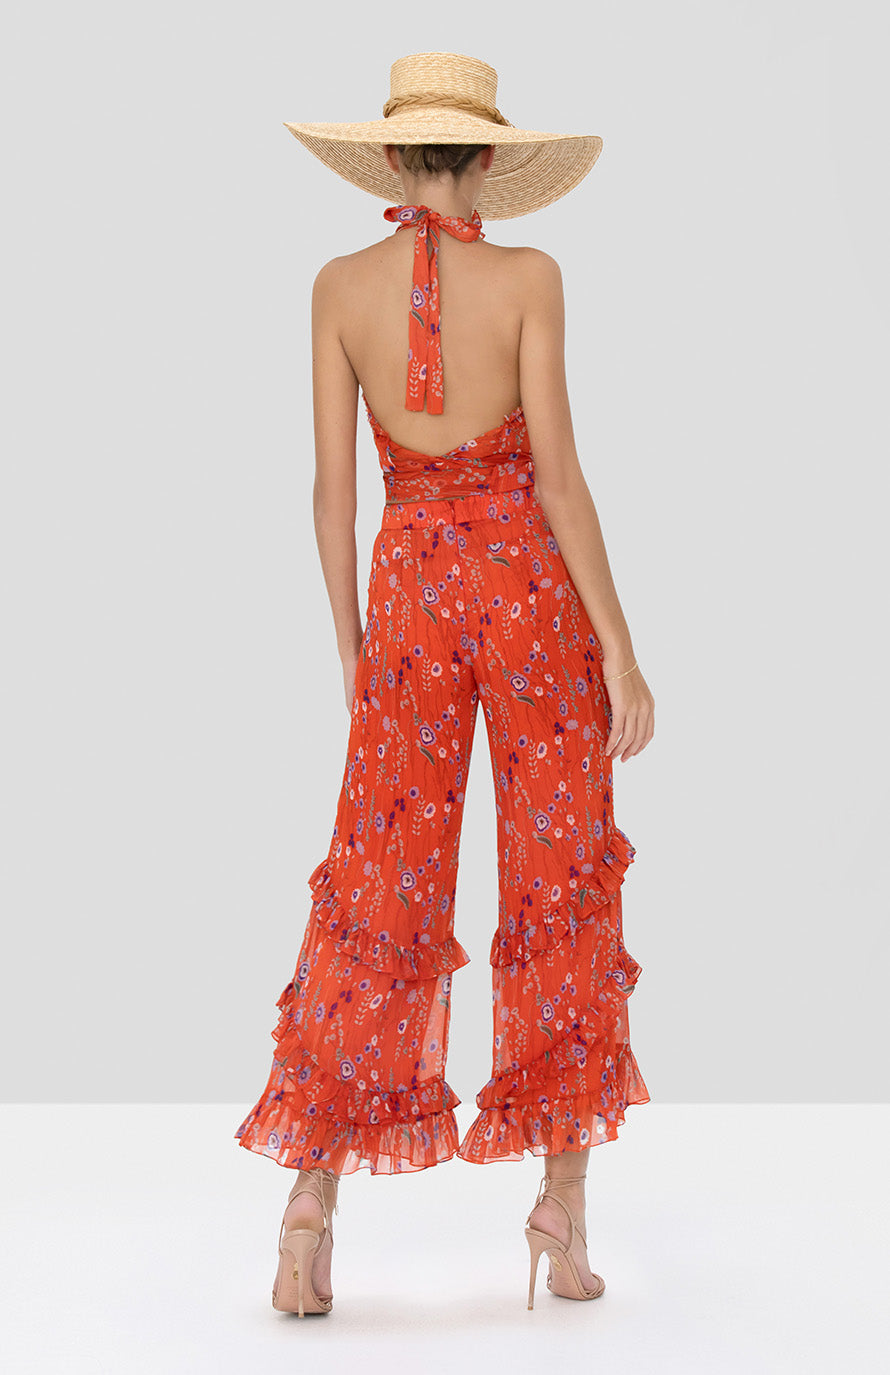 Alexis Balbina Top and Faizel Pant in Red Bouquet from Spring Summer 2020 Collection - Rear View